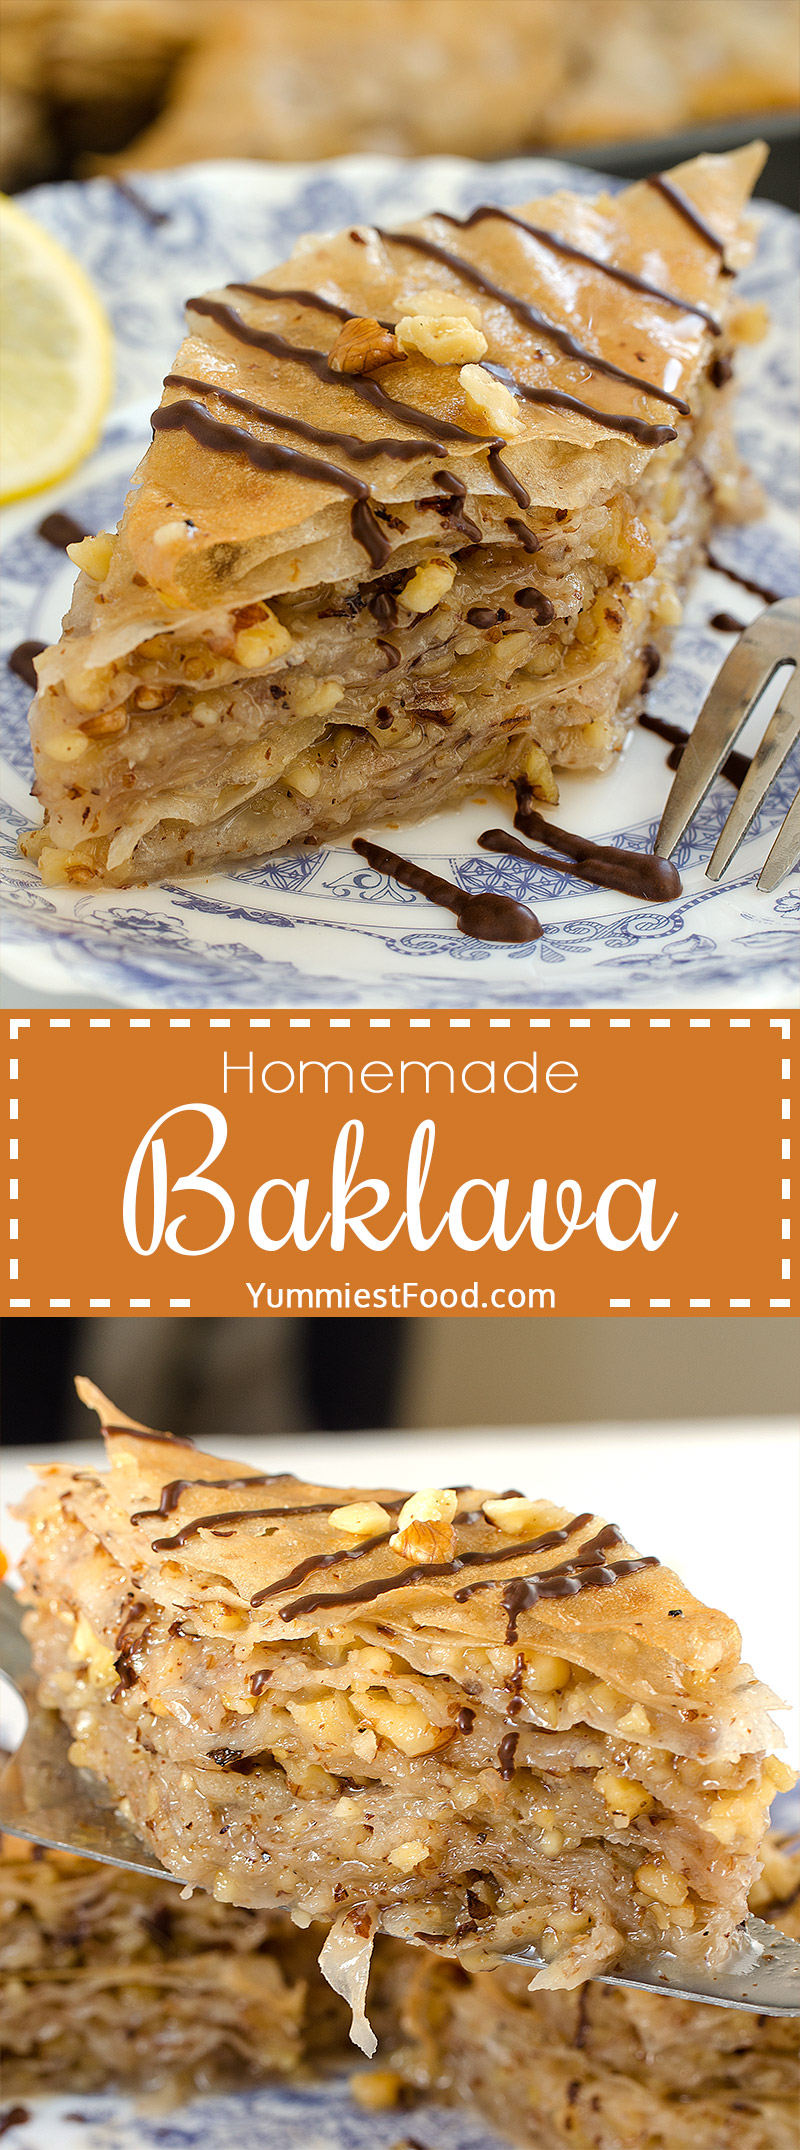 Baklava - So quick and easy to make with only few ingredients